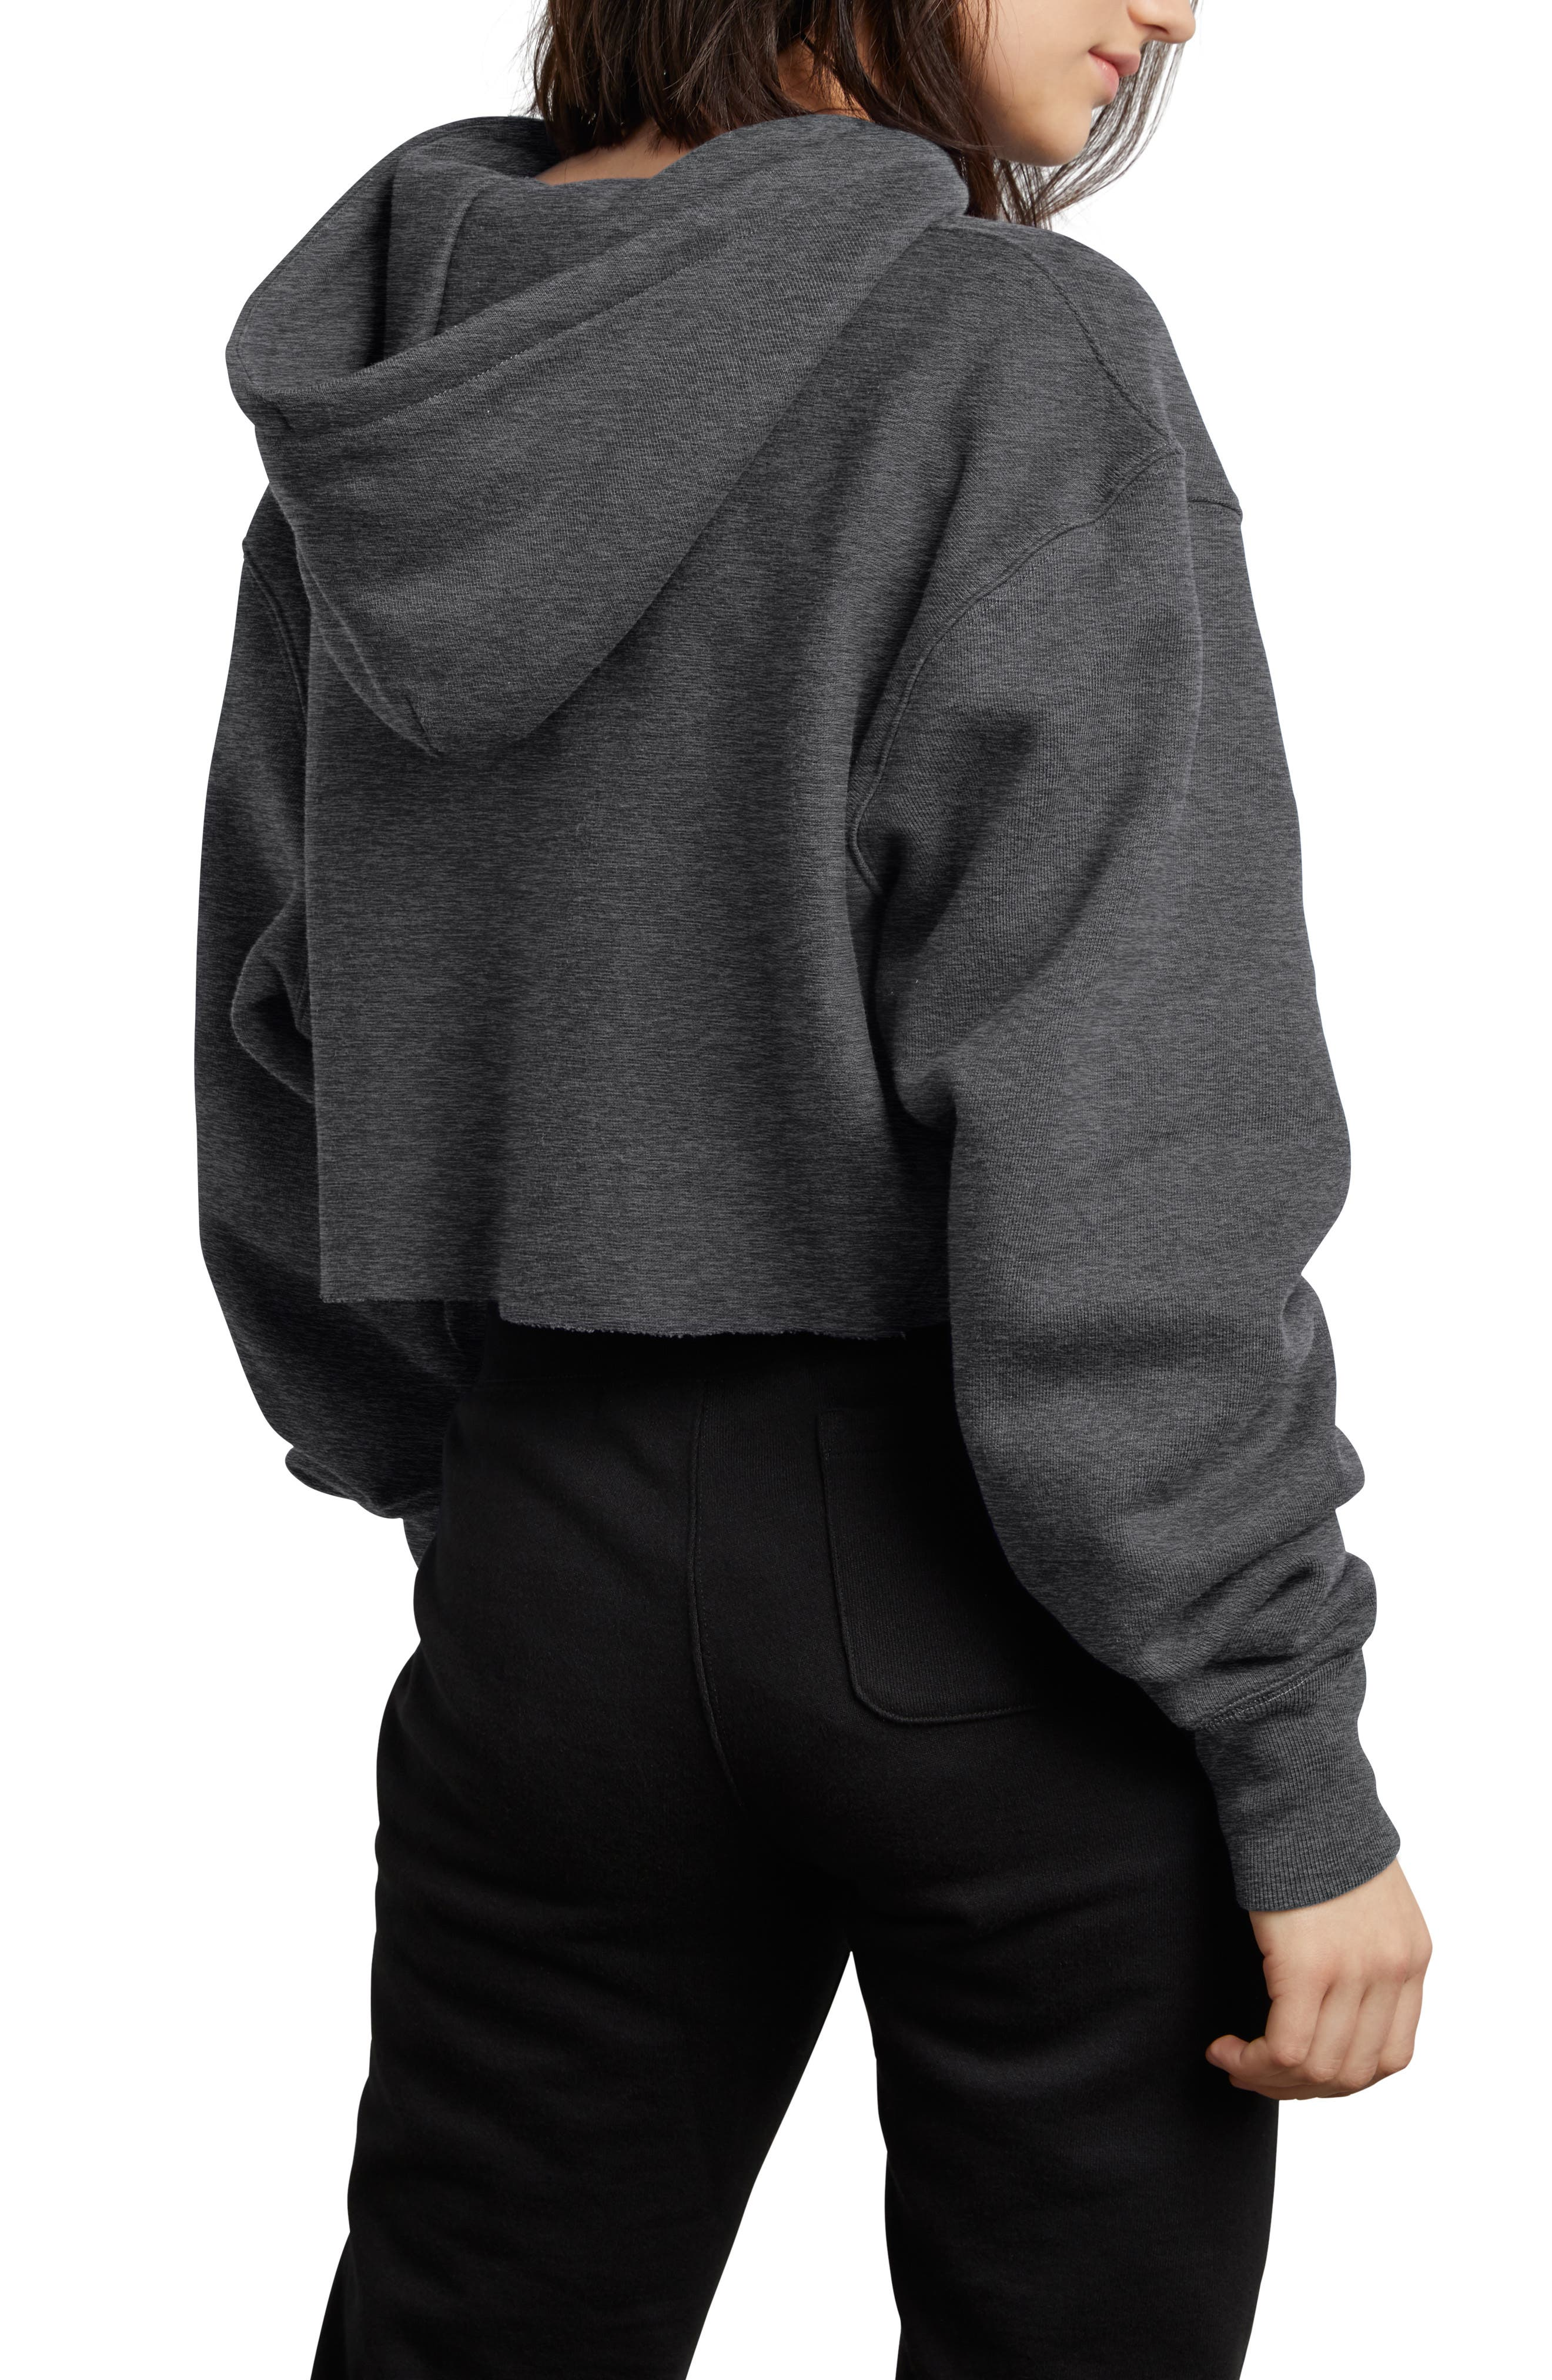 CHAMPION, Reverse Weave Crop Hoodie, Alternate thumbnail 2, color, GRANITE HEATHER